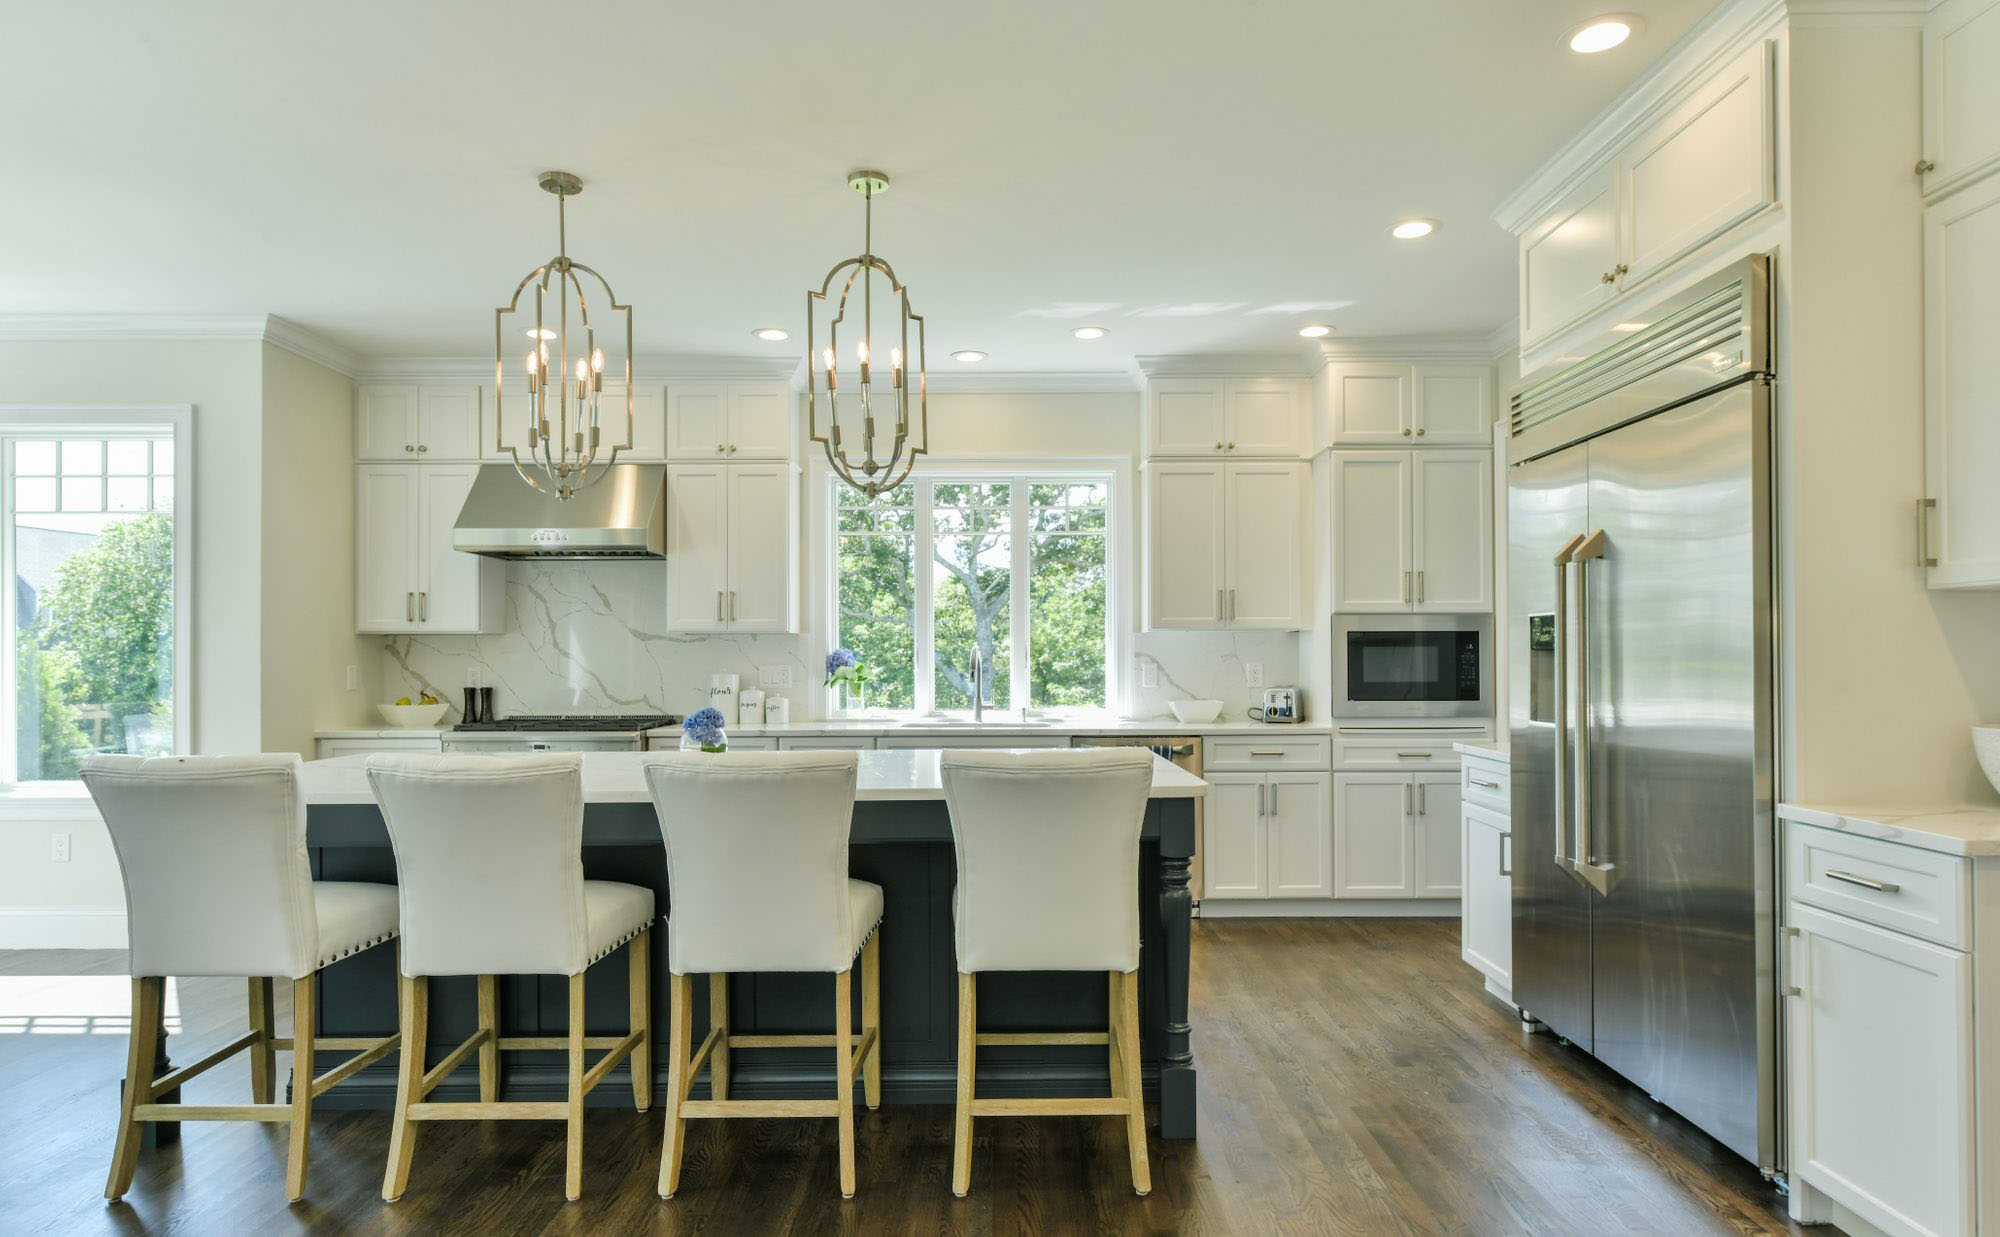 Cream kitchen cabinets with marble countertops and matching solid slab backsplash. Dark gray island with plush seating.